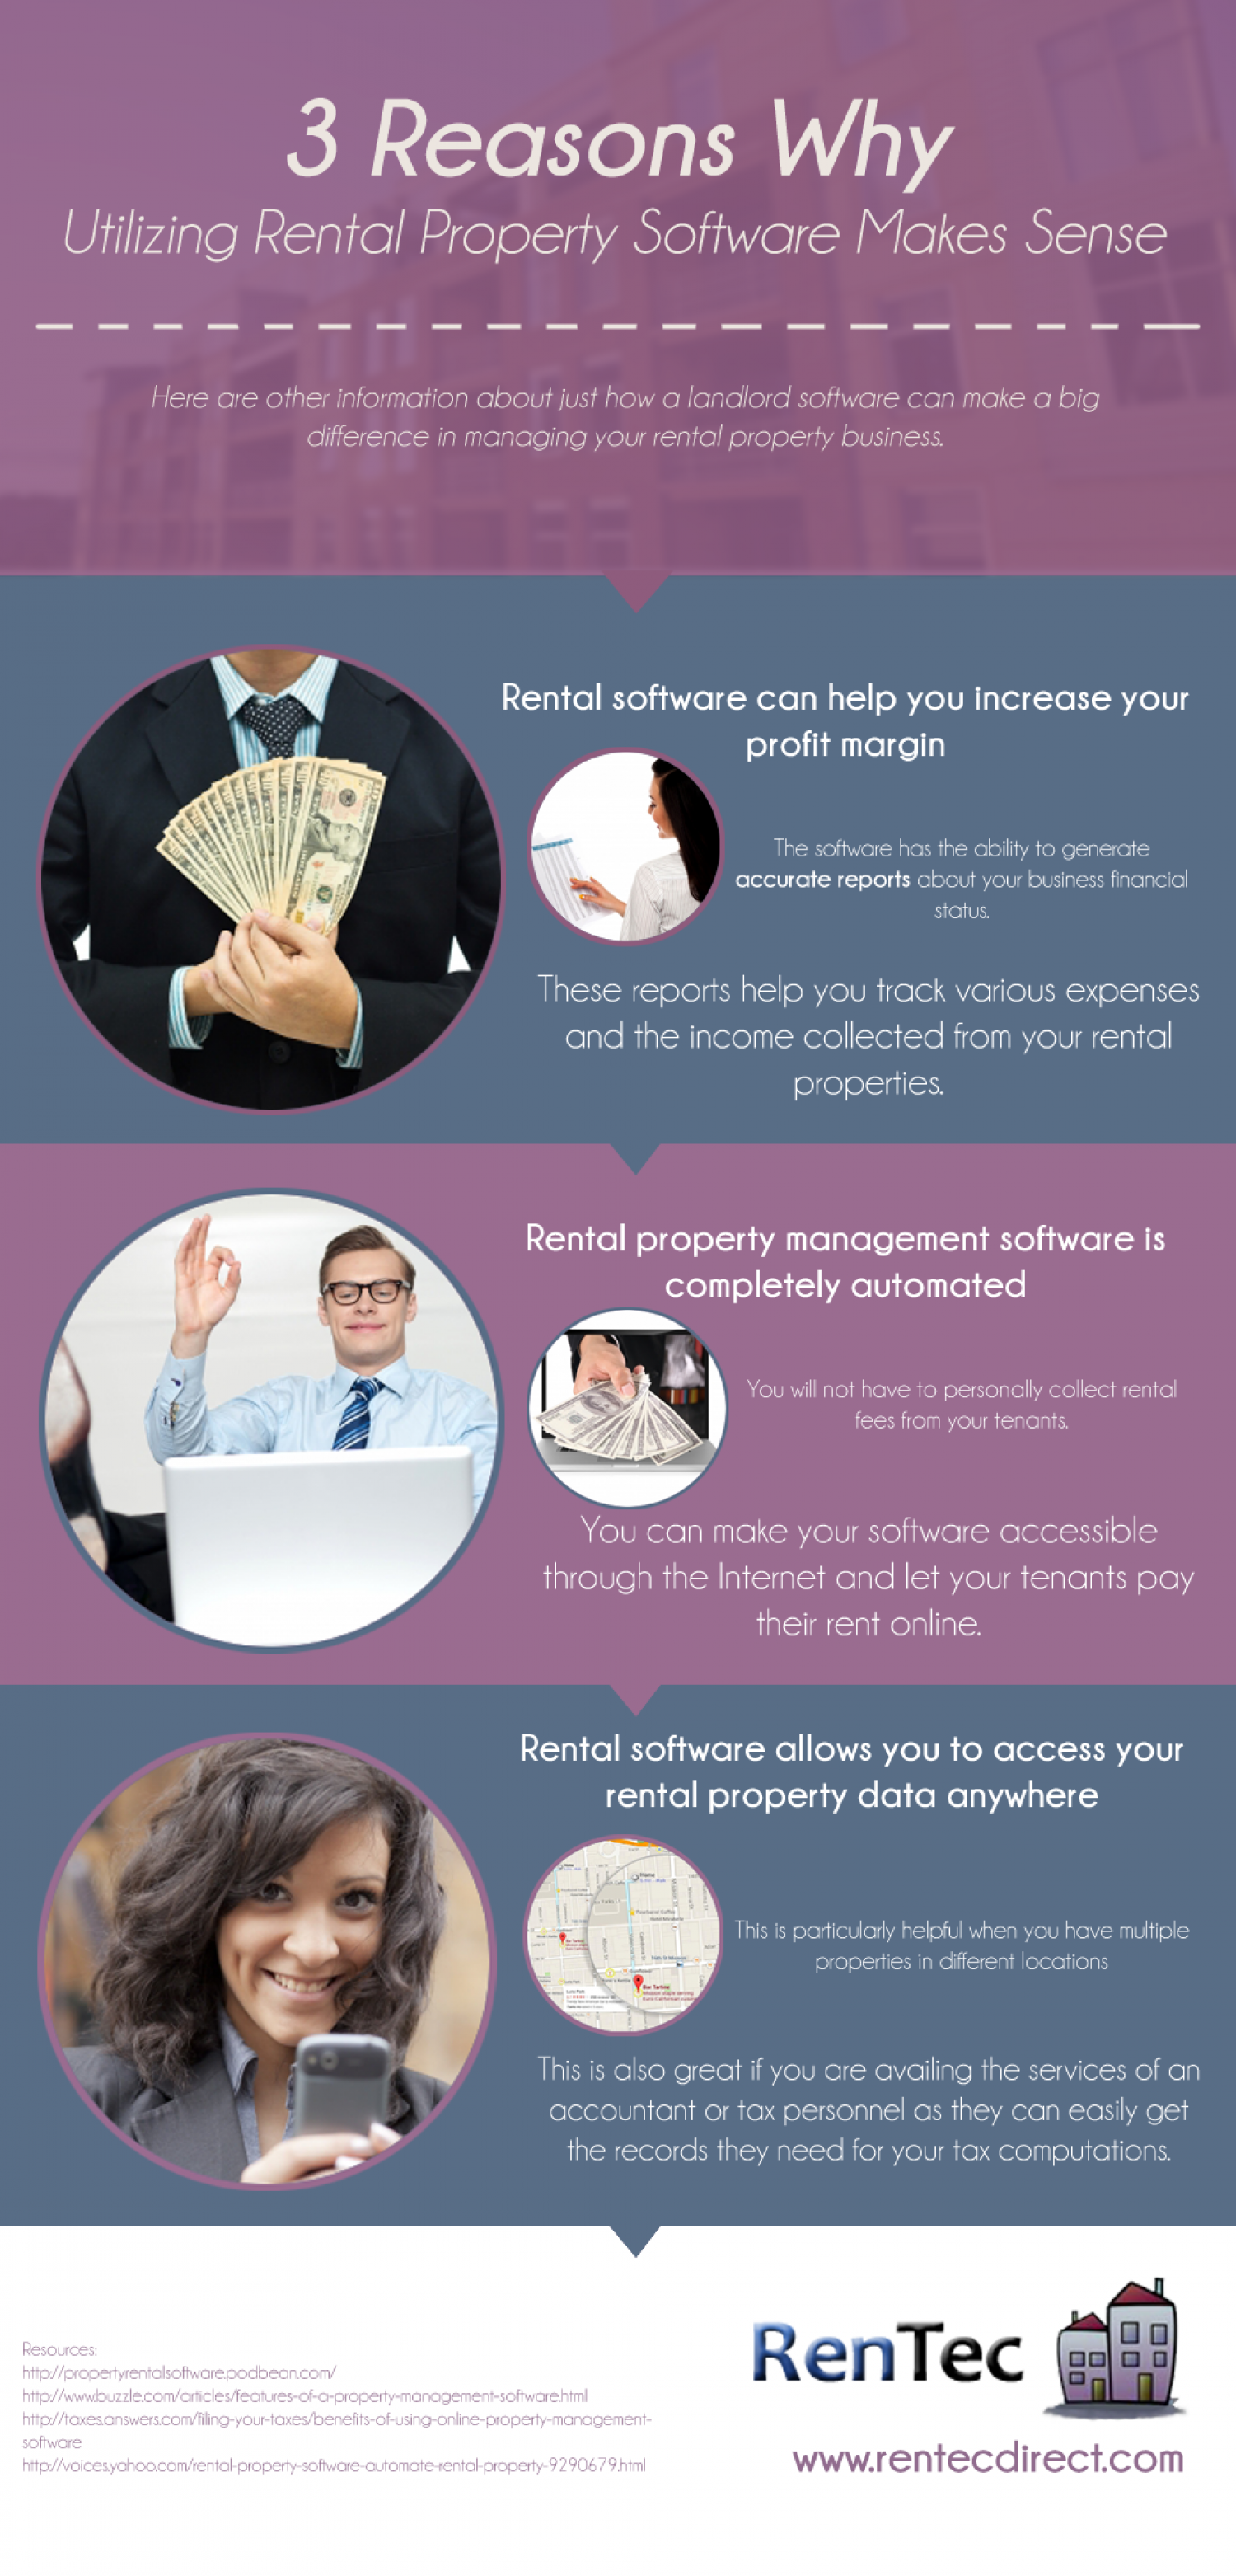 3 Reasons Why Utilizing Rental Property Software Makes Sense Infographic